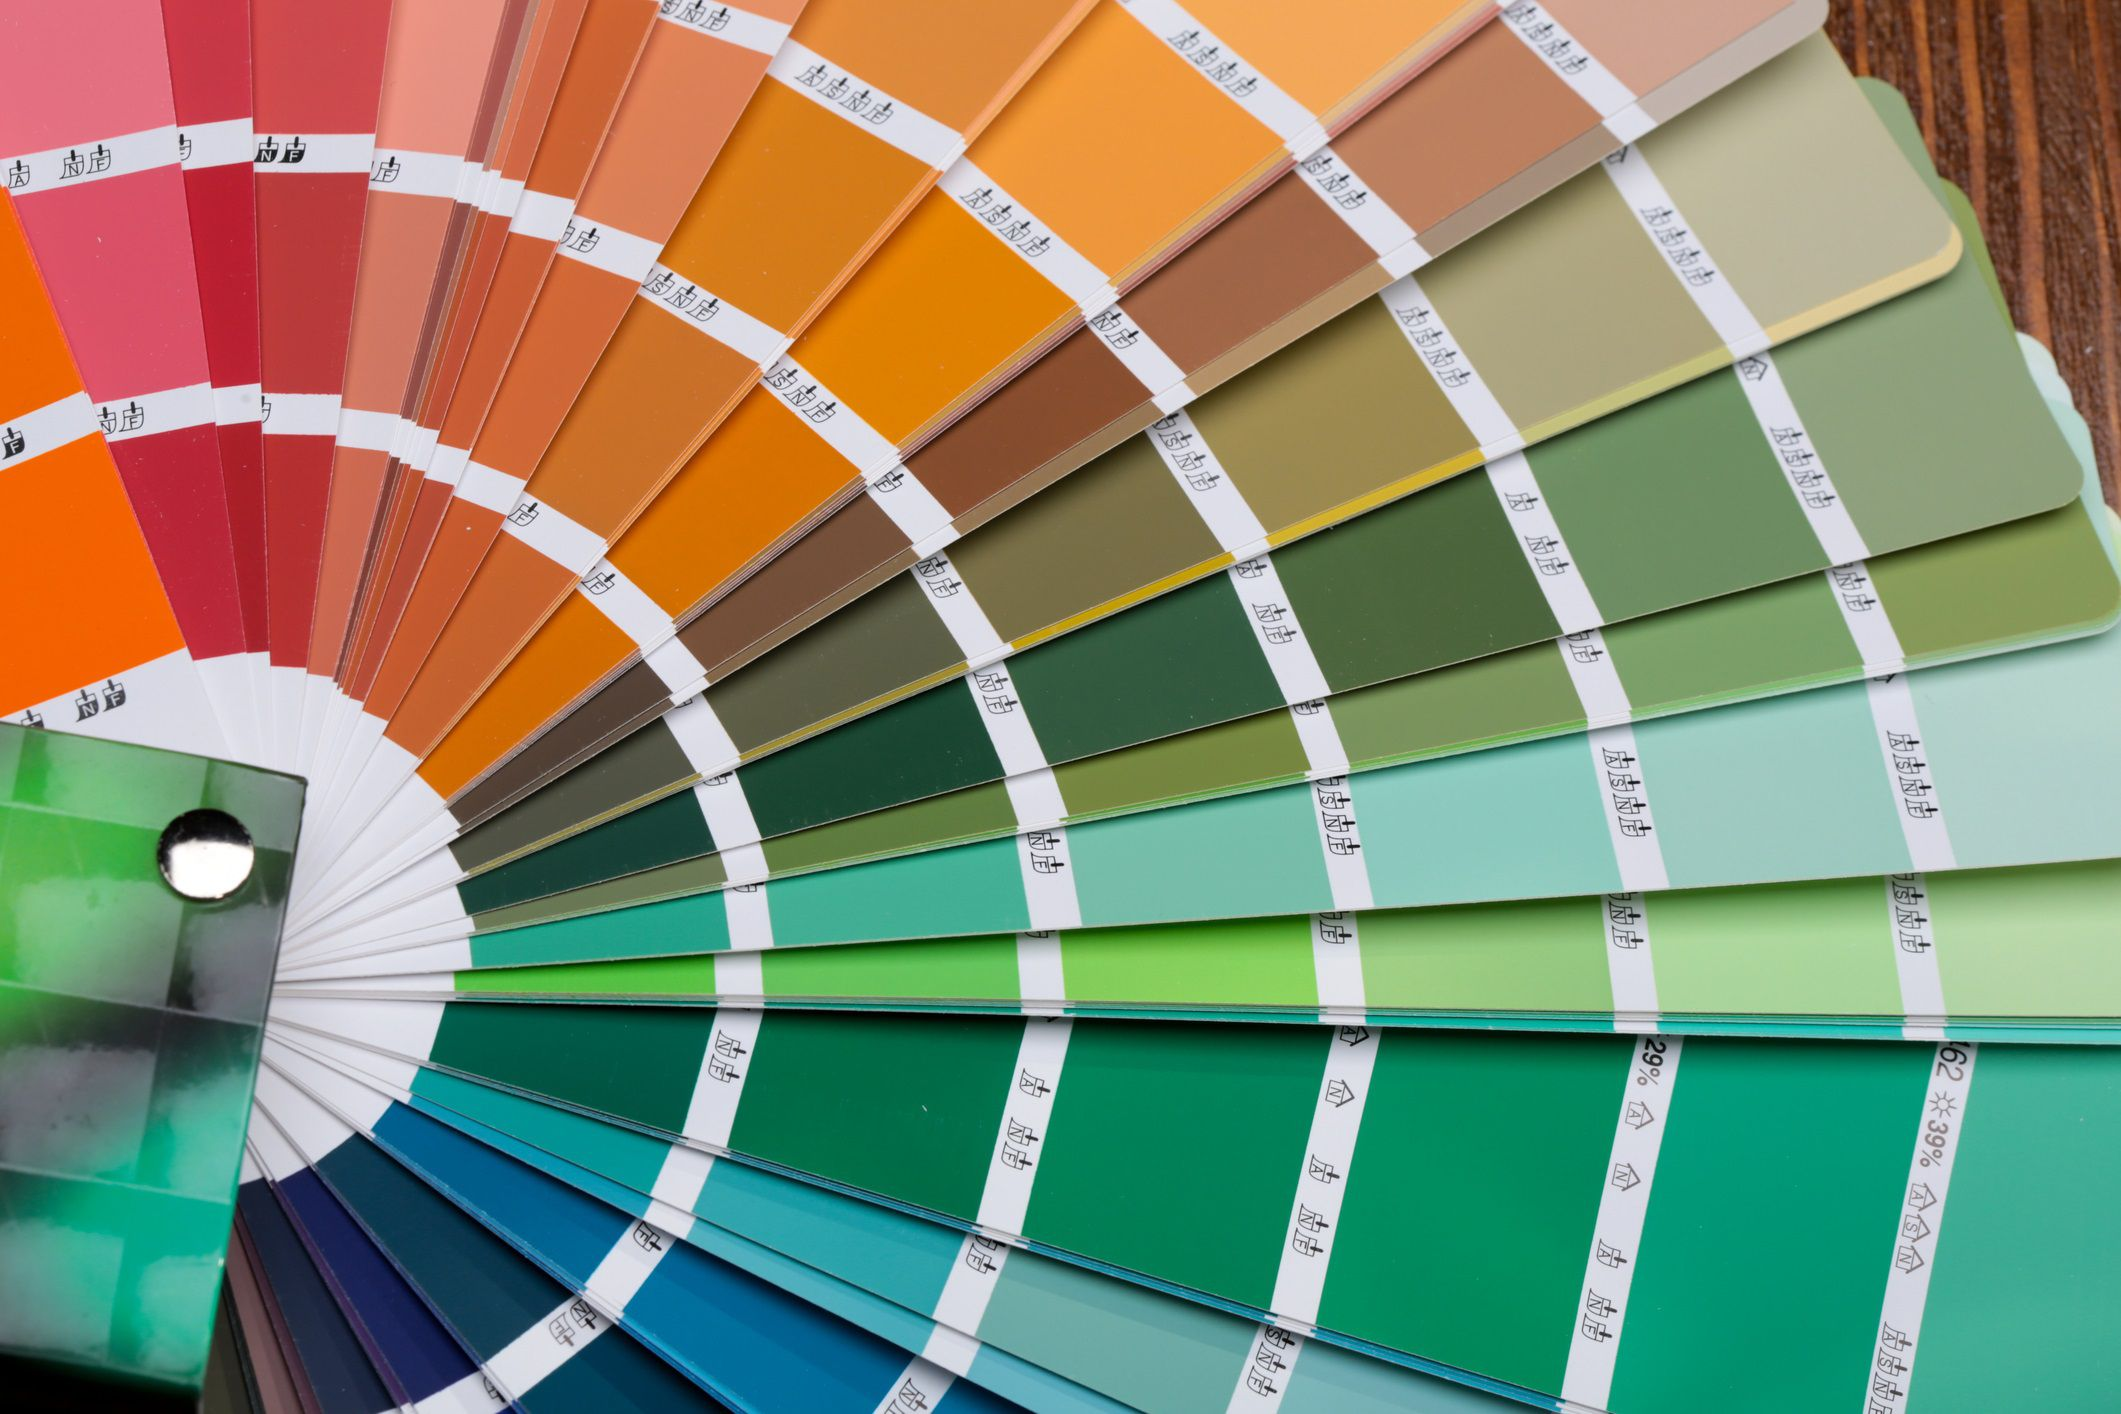 Pantone's CMYK Coated and Uncoated Guides Are Now Produced with G7 Calibrated Printing